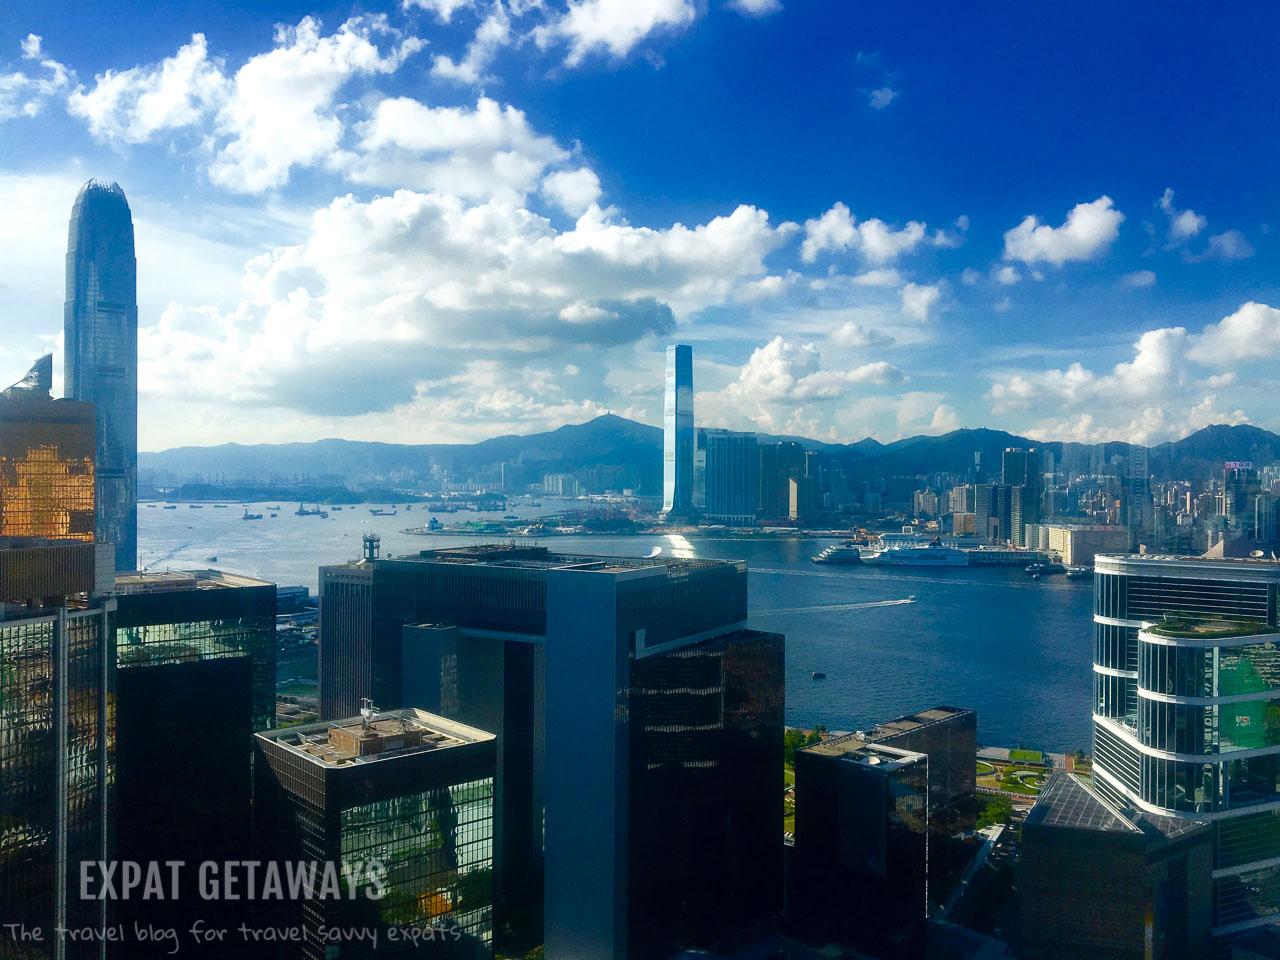 Upper House in Admiralty offers rooms with a view. Expat Getaways, First Time Hong Kong Survival Guide - Accommodation.